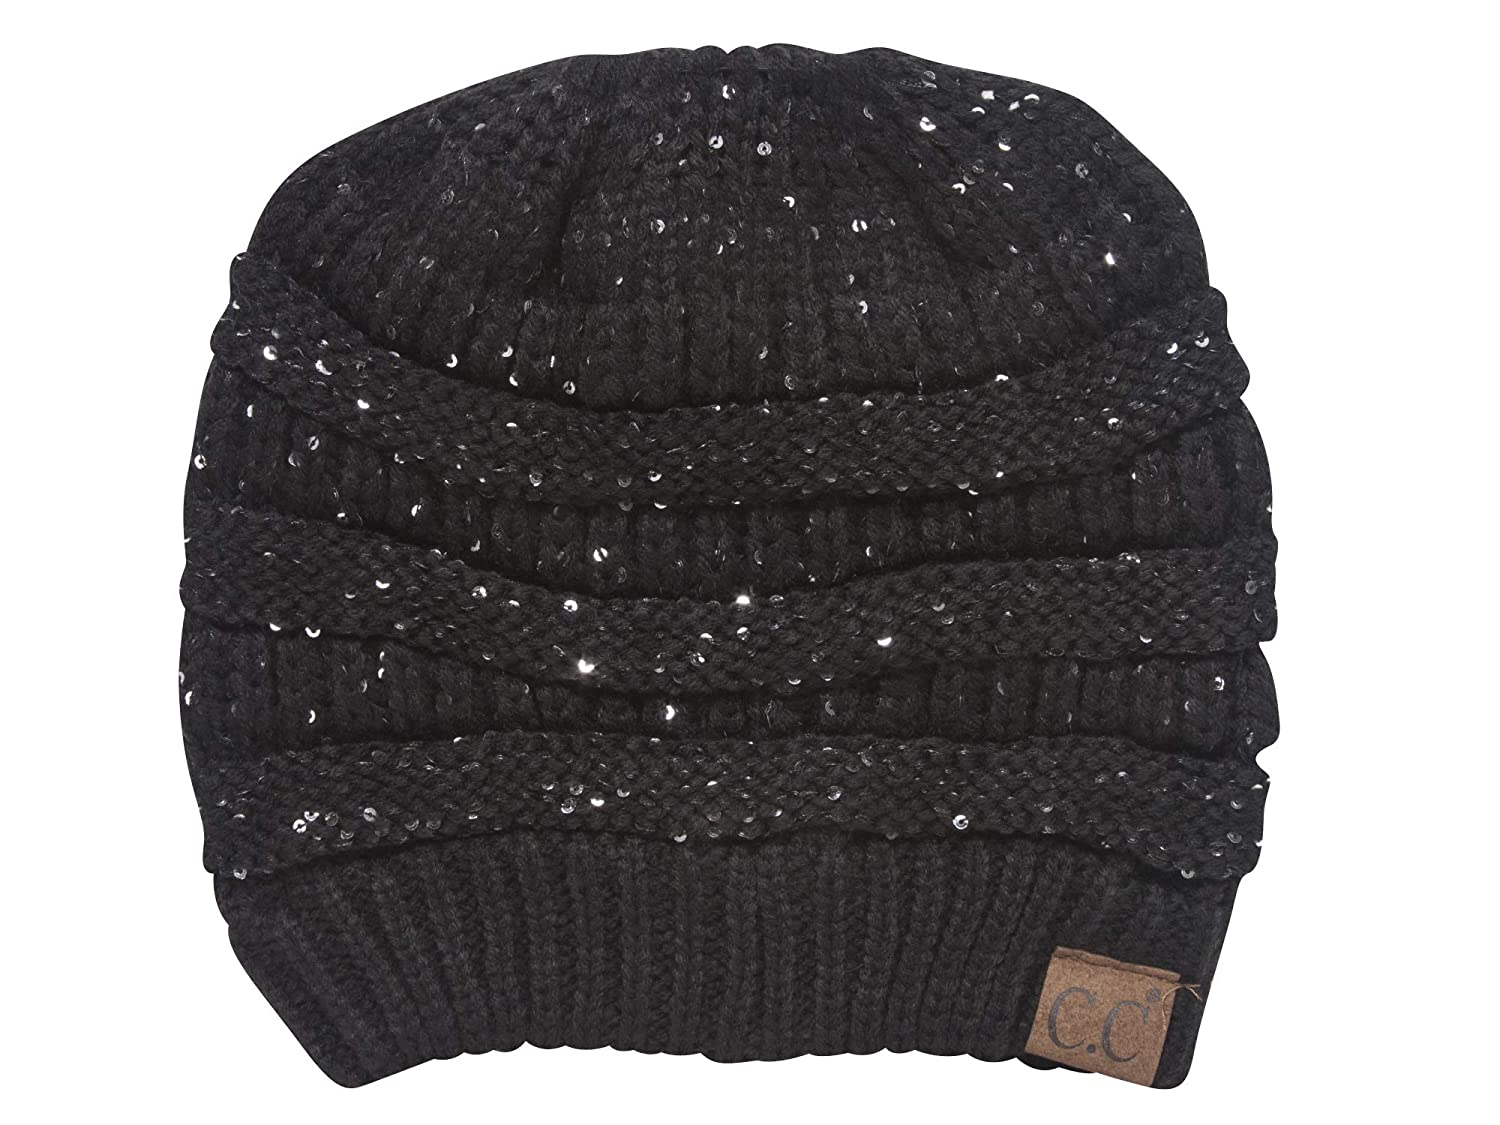 b34aa7437 C.C Ponytail Knitted Beanie w/Sequins - Black at Amazon Women's ...